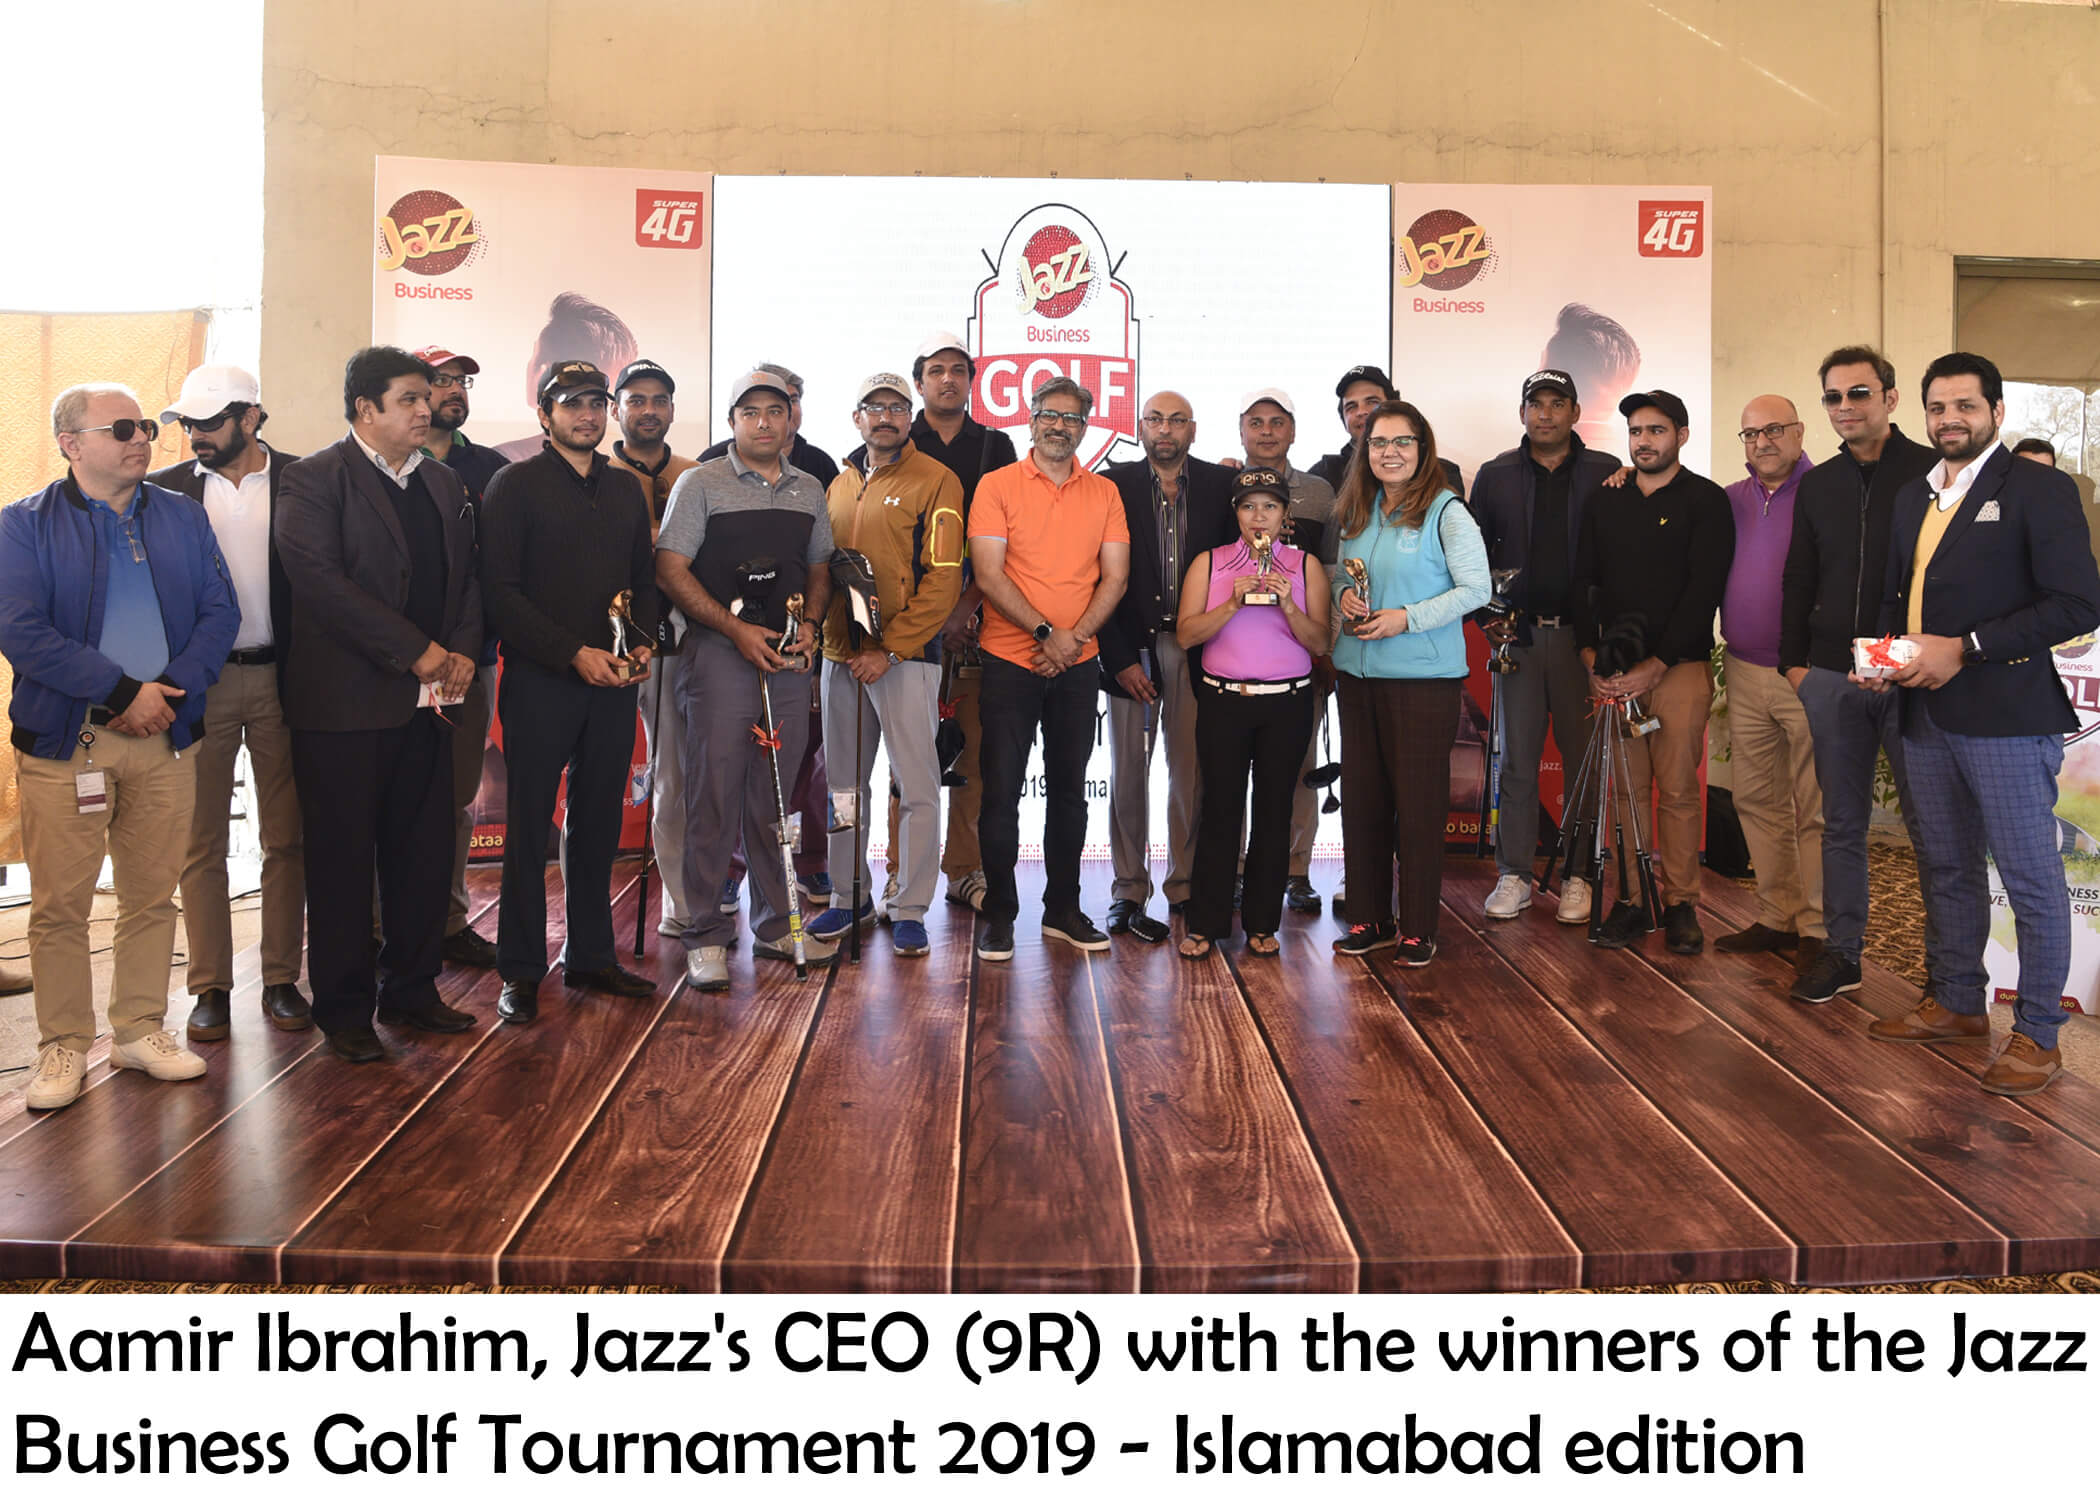 Jazz Business Golf Tournament 2019 Concludes in Islamabad